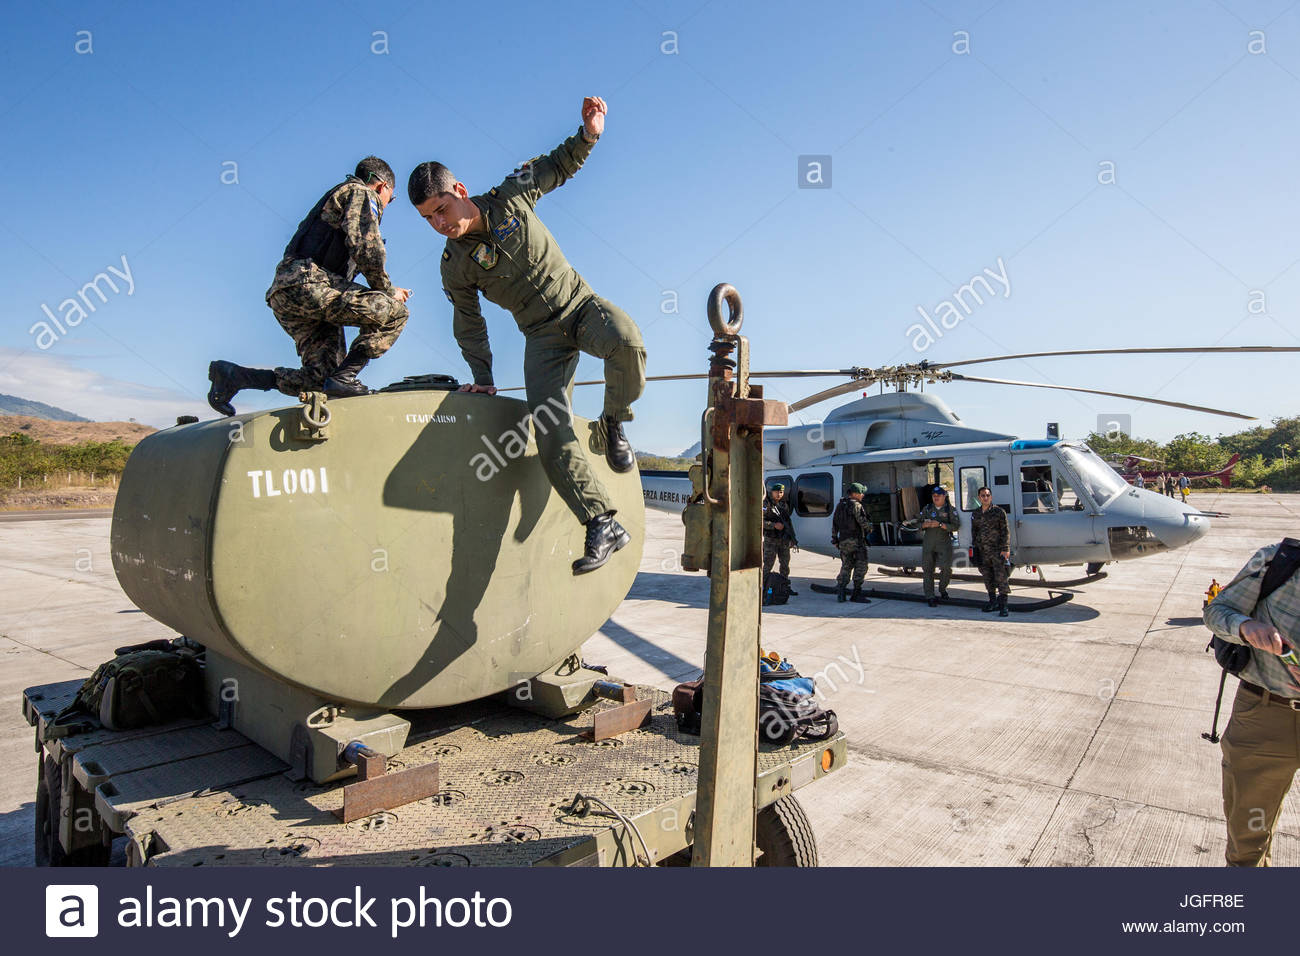 A fuel tank for helicopters is used to resupply the choppers that took members of an expedition to a location in - Stock Image